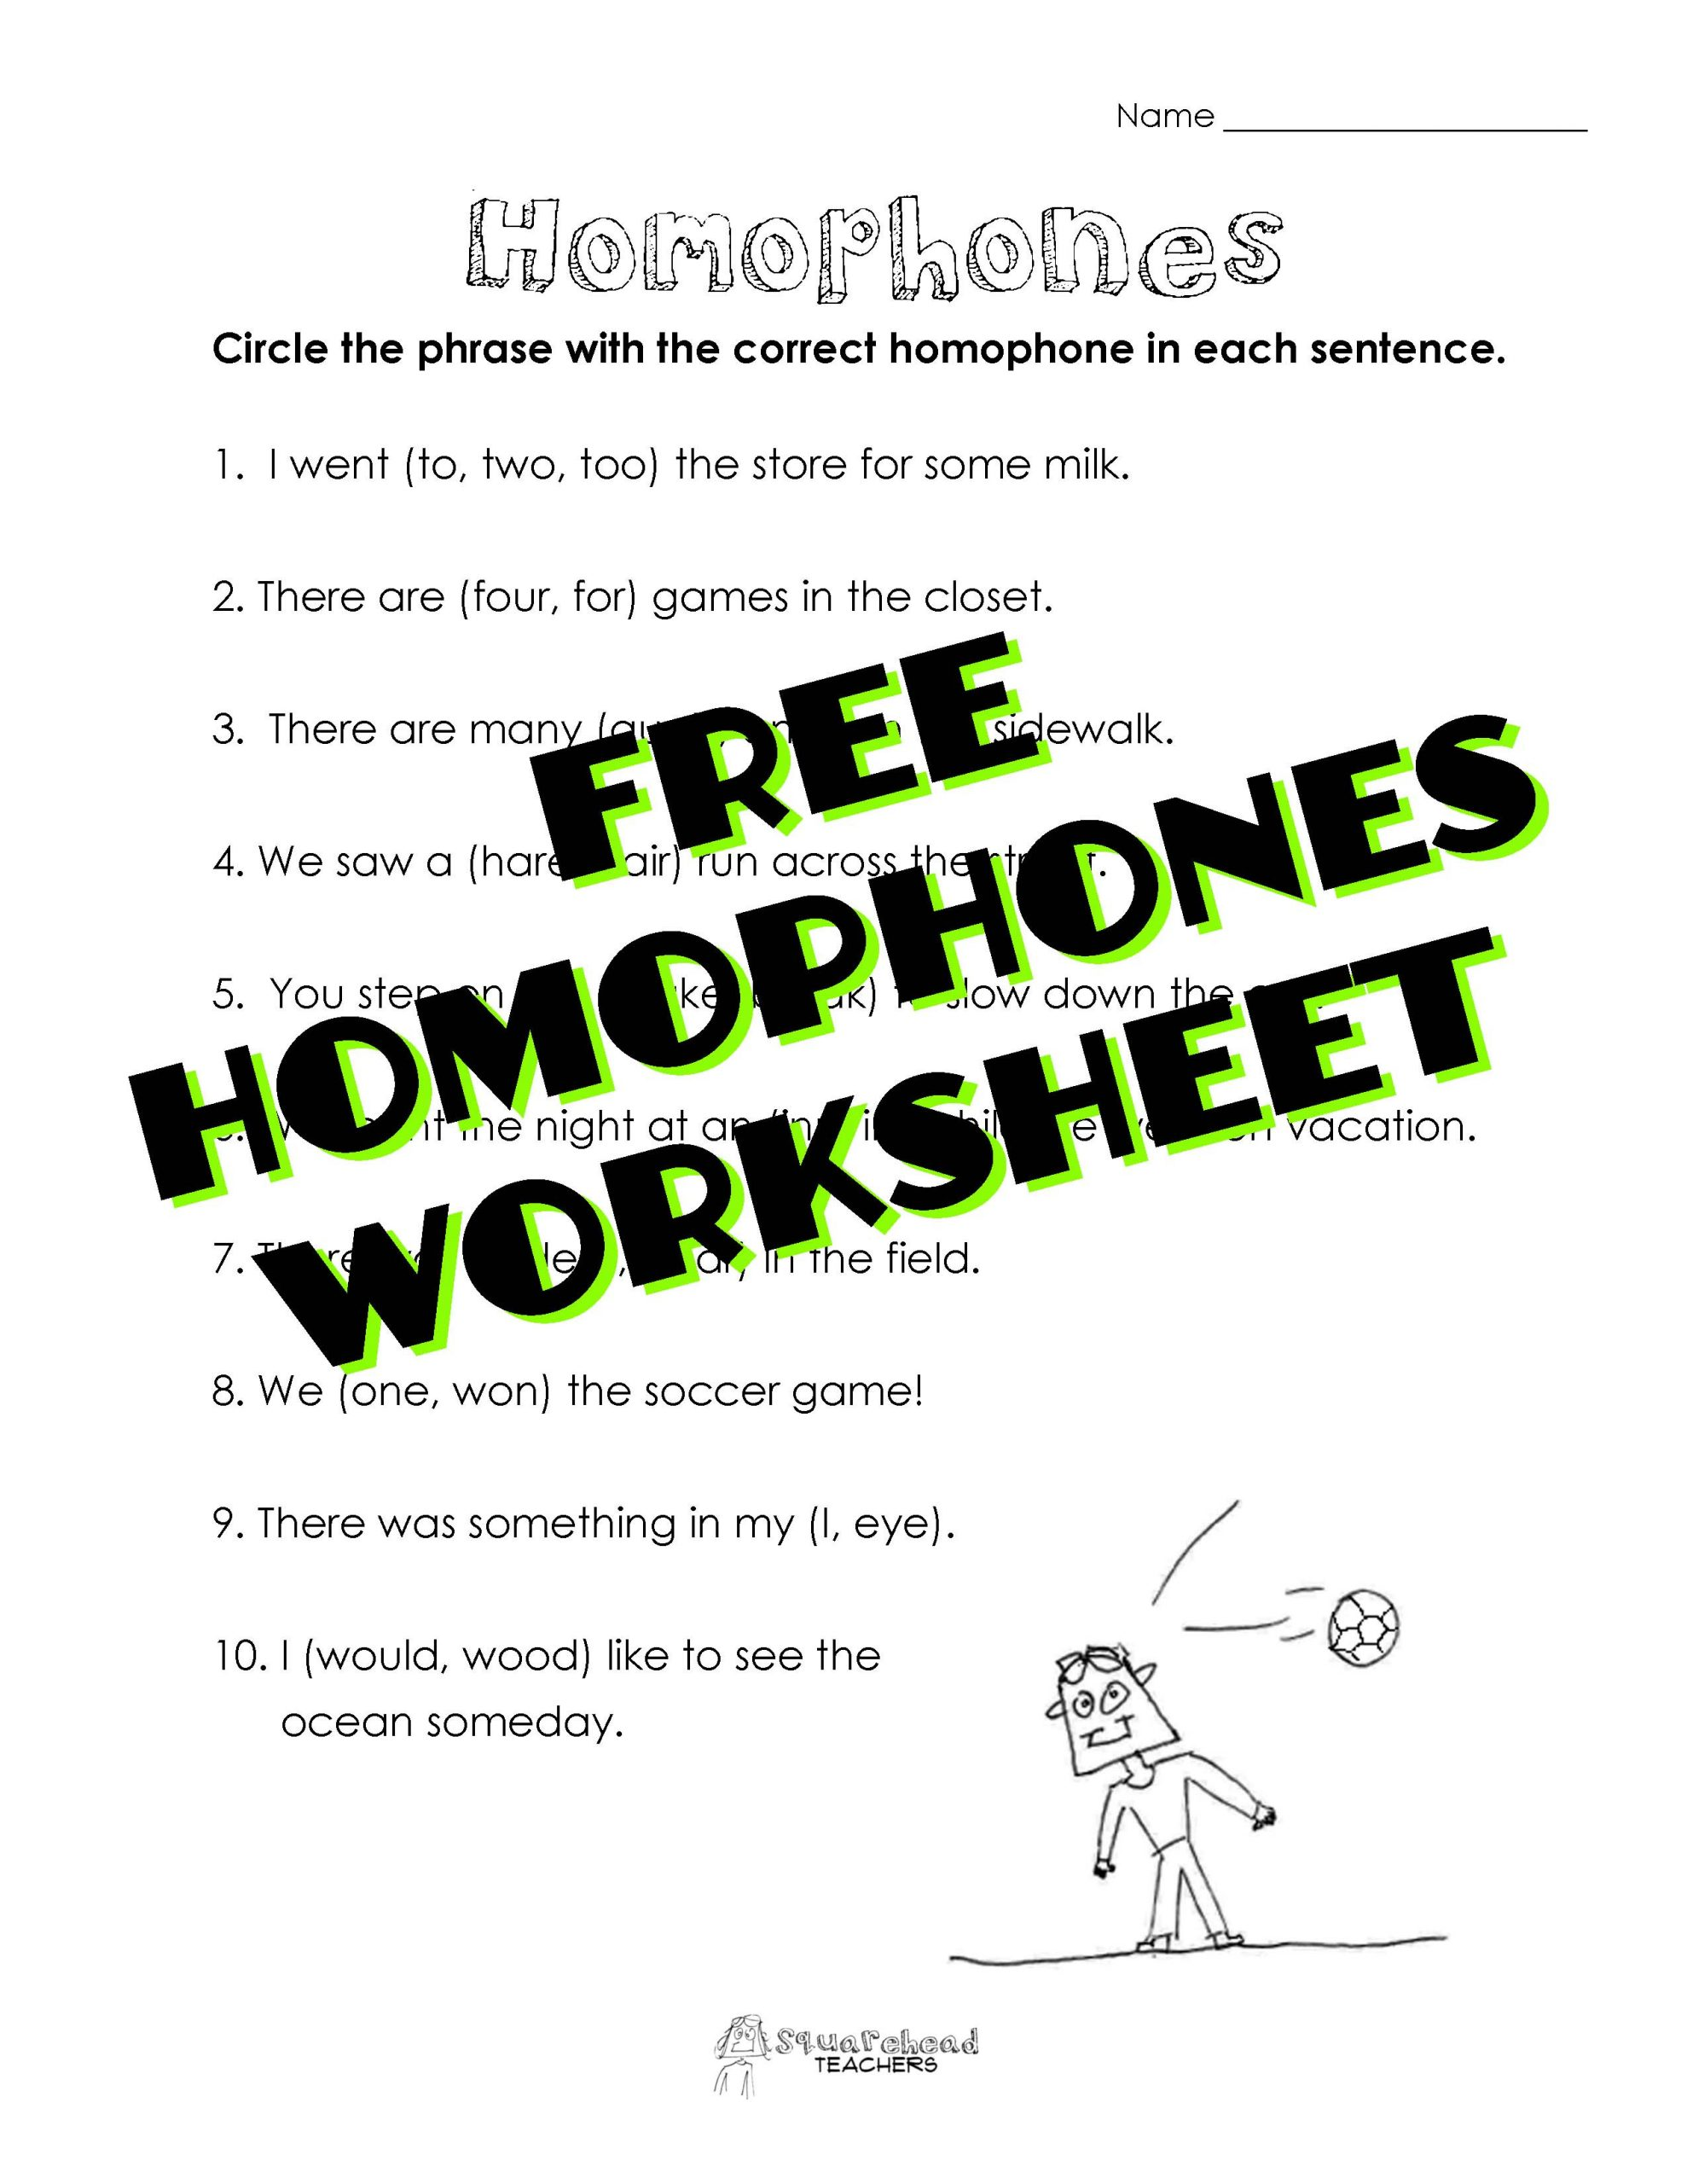 Homophones Worksheets for Grade 5 Worksheet Homophones Grade 5